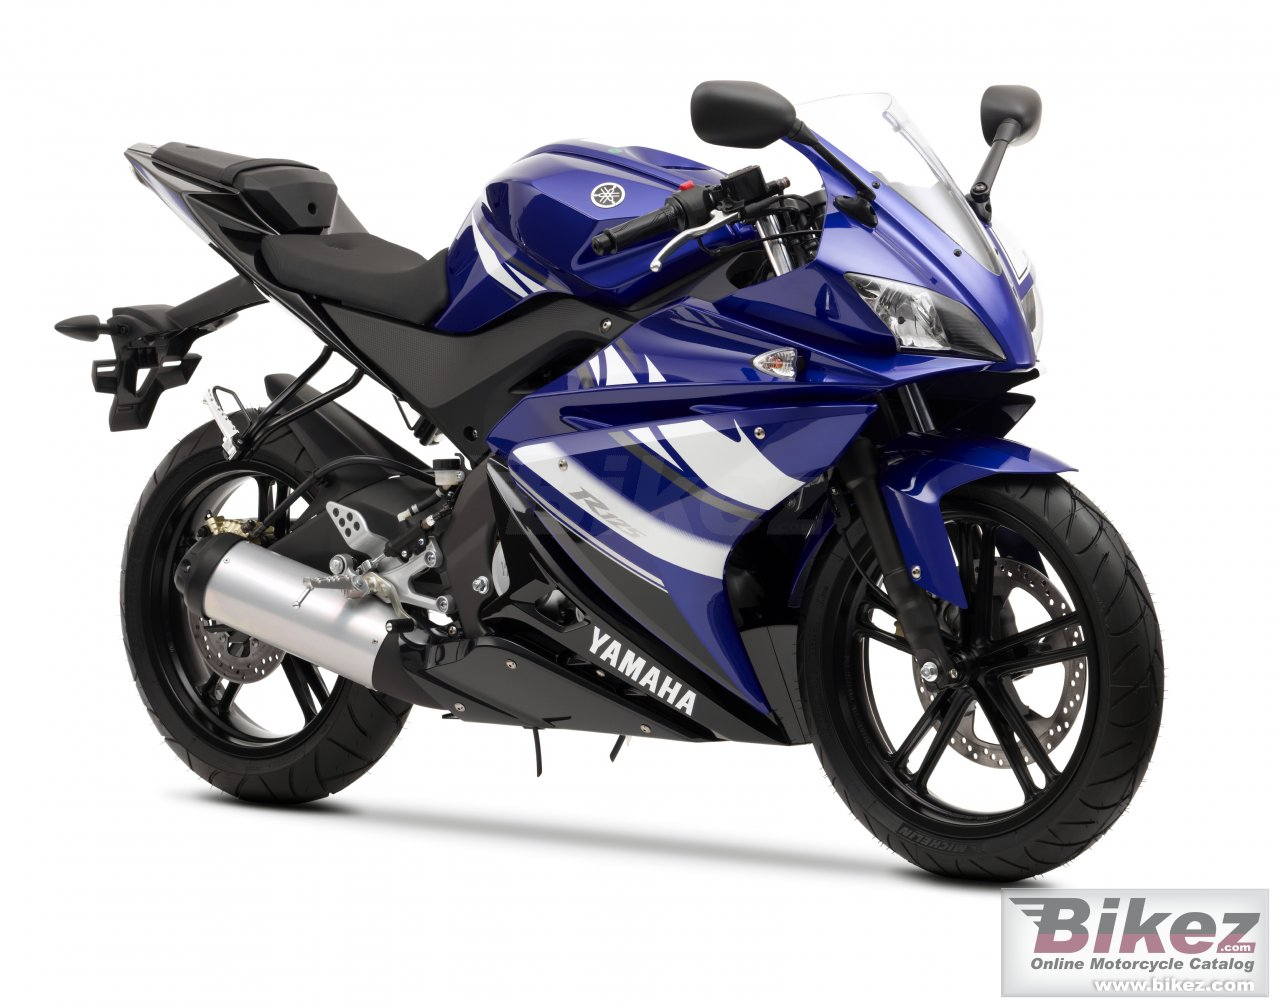 Big Yamaha yzf-r125 picture and wallpaper from Bikez.com